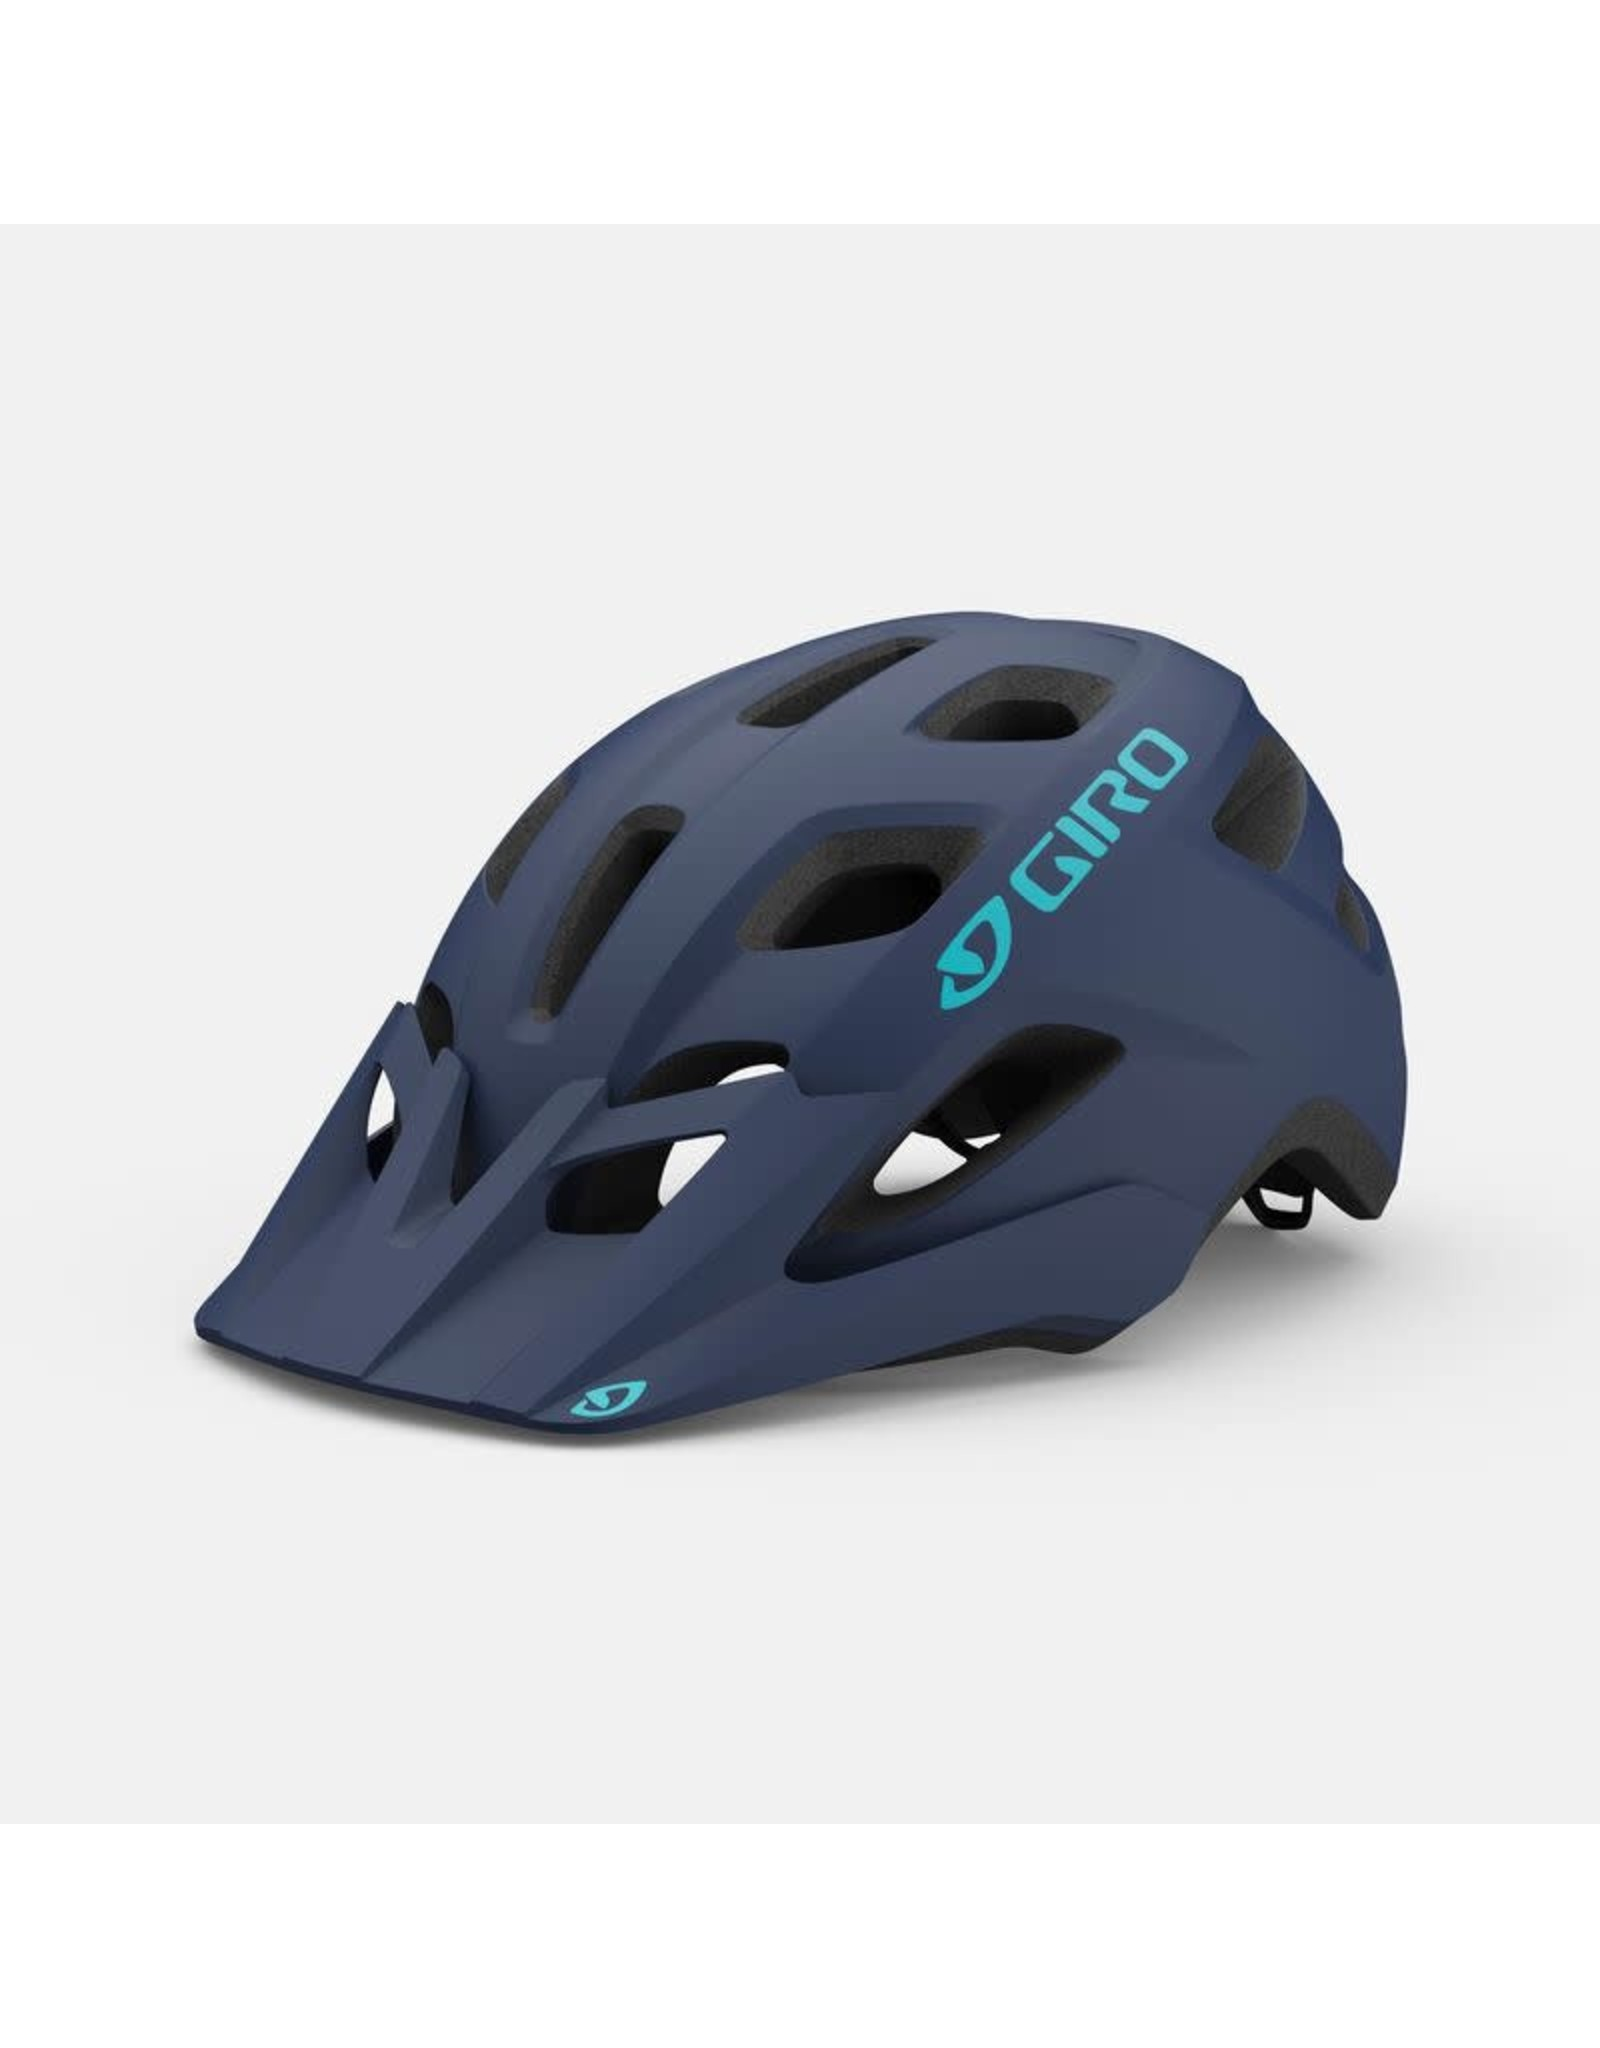 Giro Cycling Women's Giro Verce MIPS Helmet Universal Fit